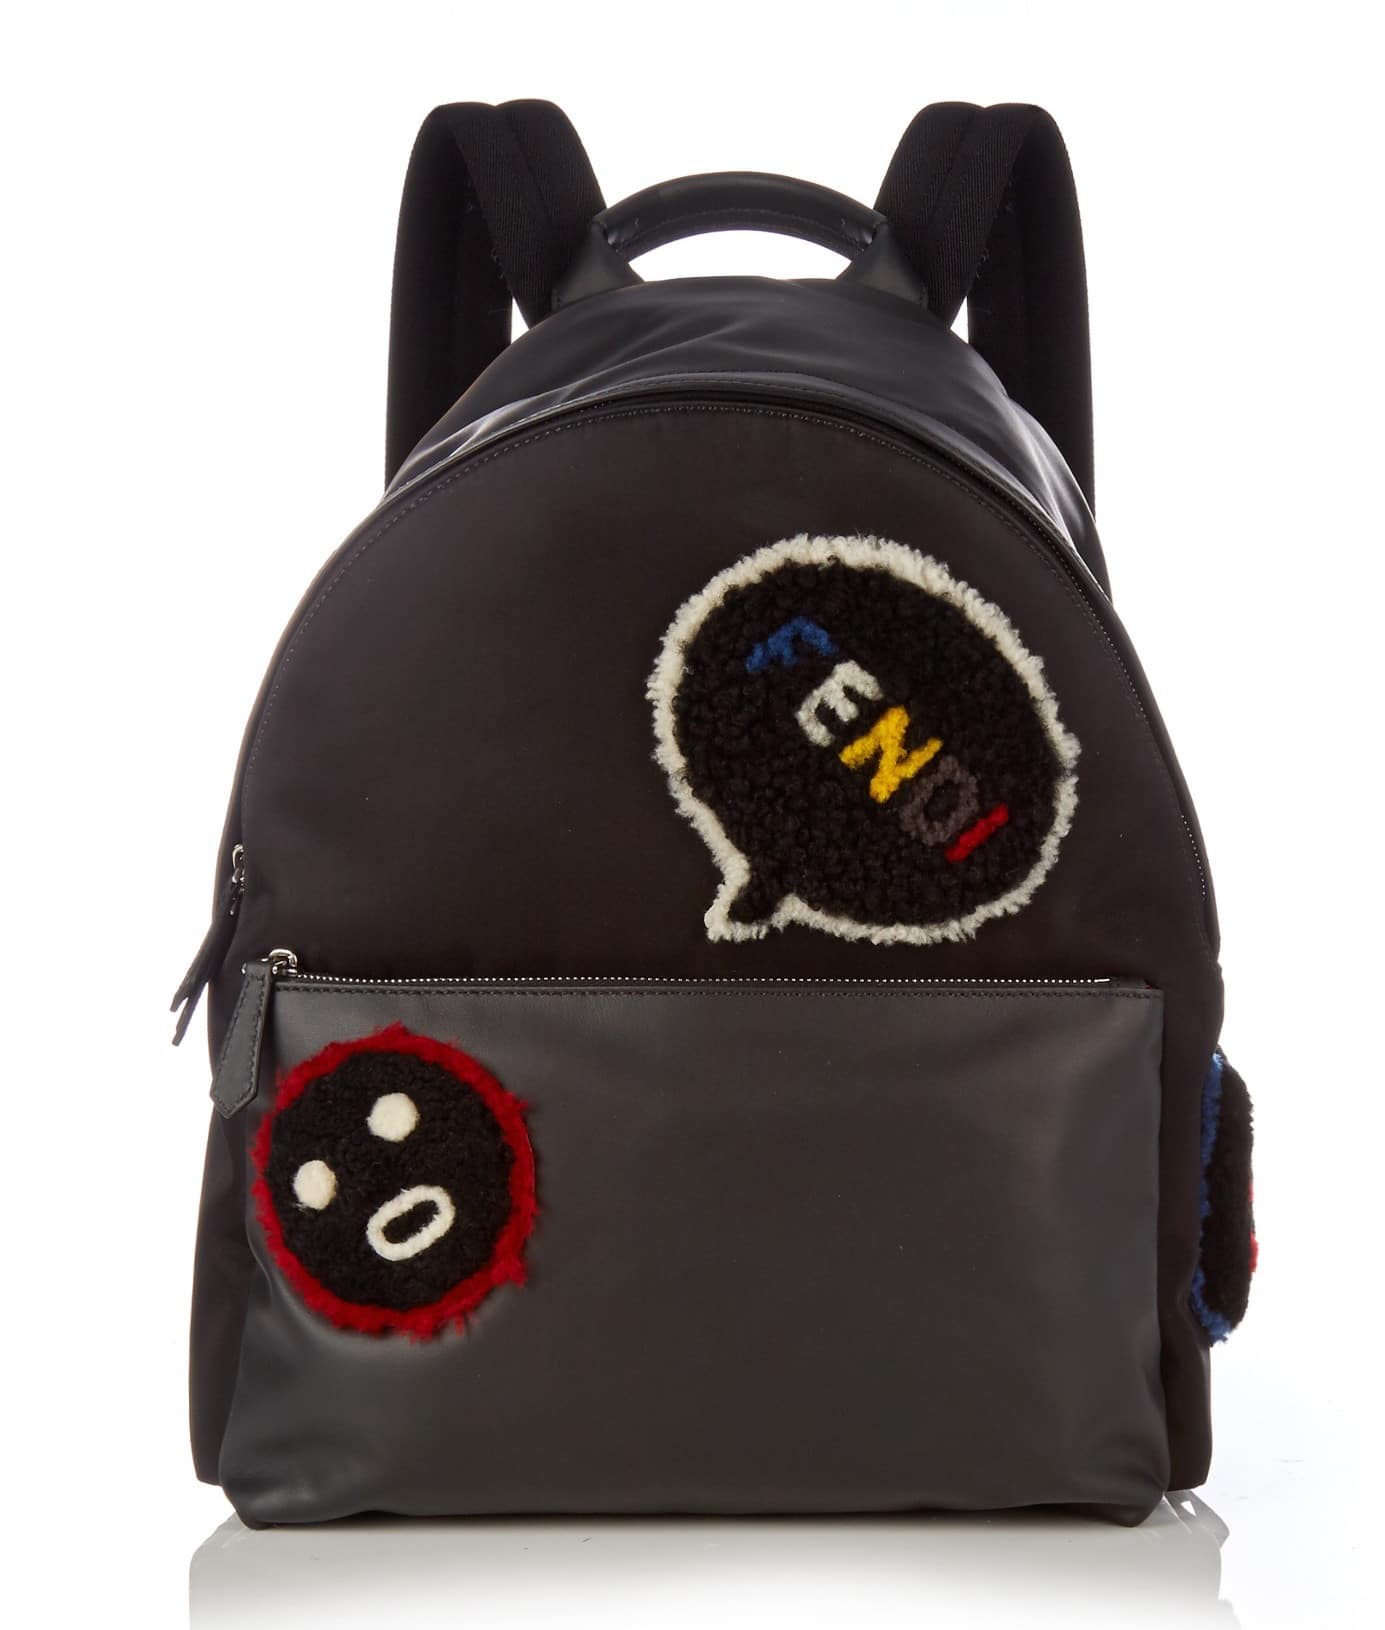 c0d5c1295472 Fendi Black Leather with Shearling Applique Bla Bla Bla Fendi Faces  Backpack Bag